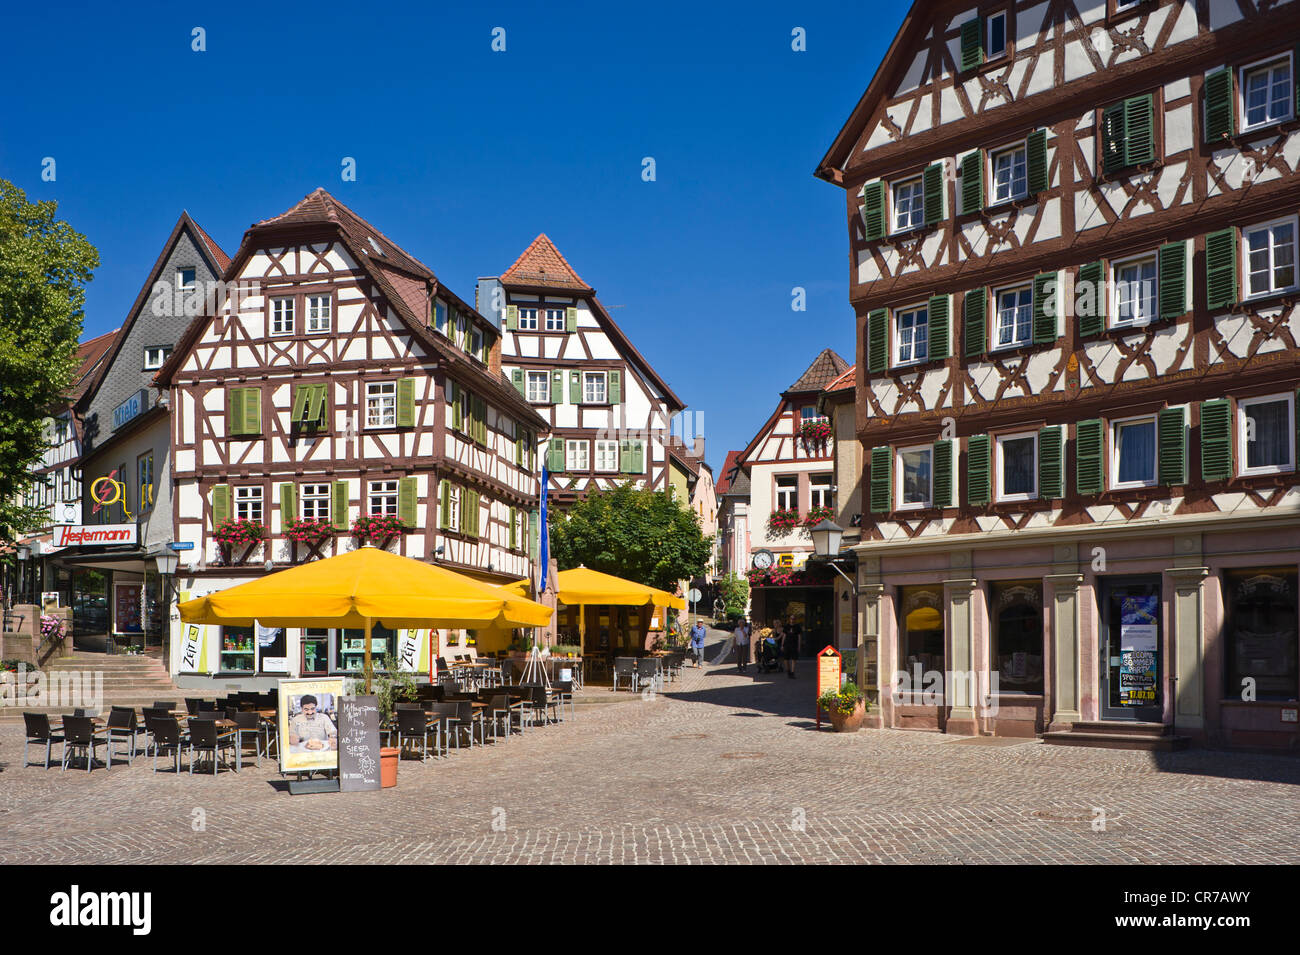 half timbered houses on the market square mosbach odenwald stock photo 48720055 alamy. Black Bedroom Furniture Sets. Home Design Ideas